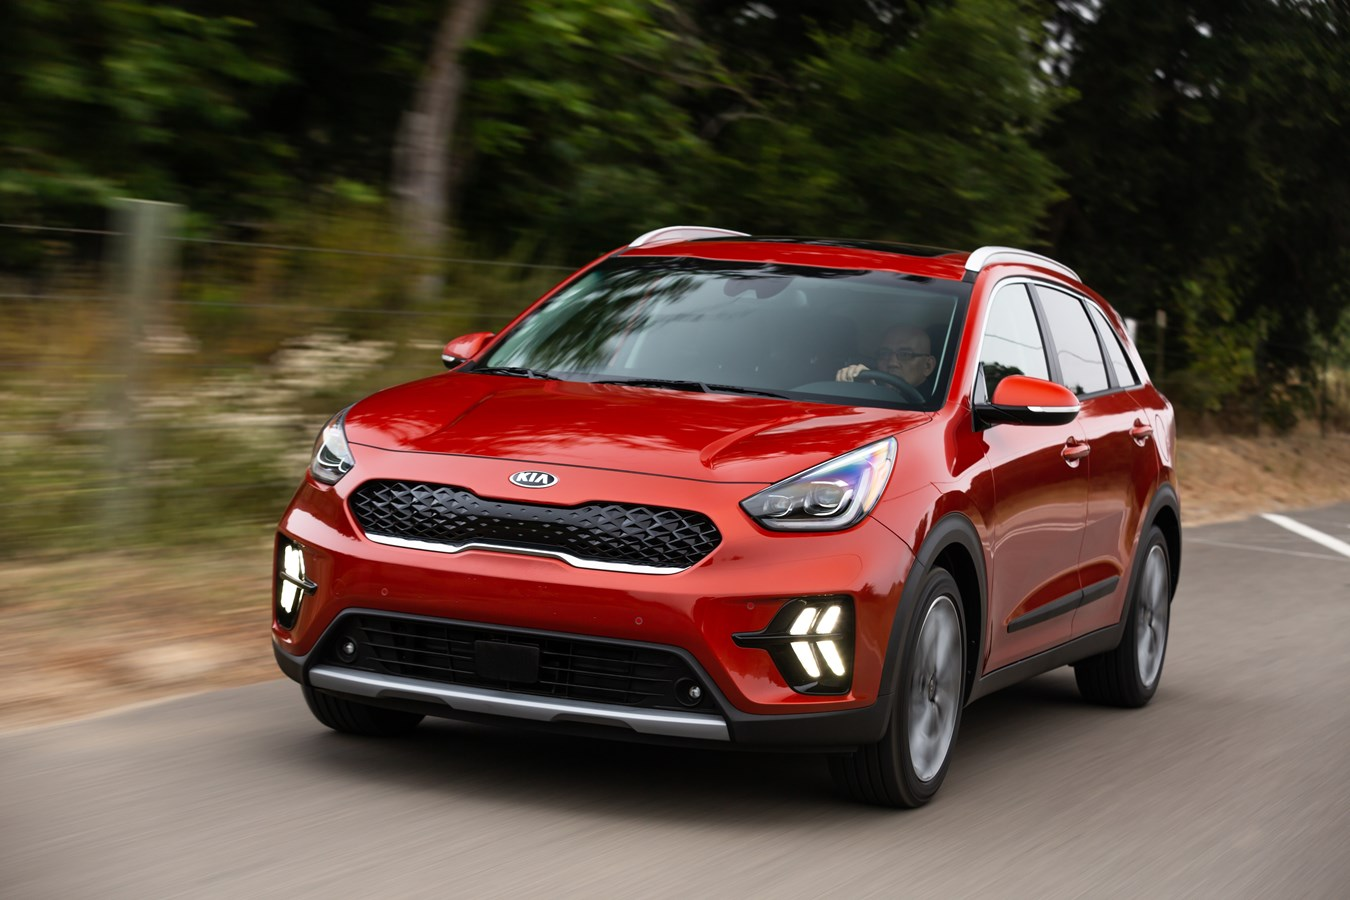 New And Used Kia Niro Prices Photos Reviews Specs The Car Connection